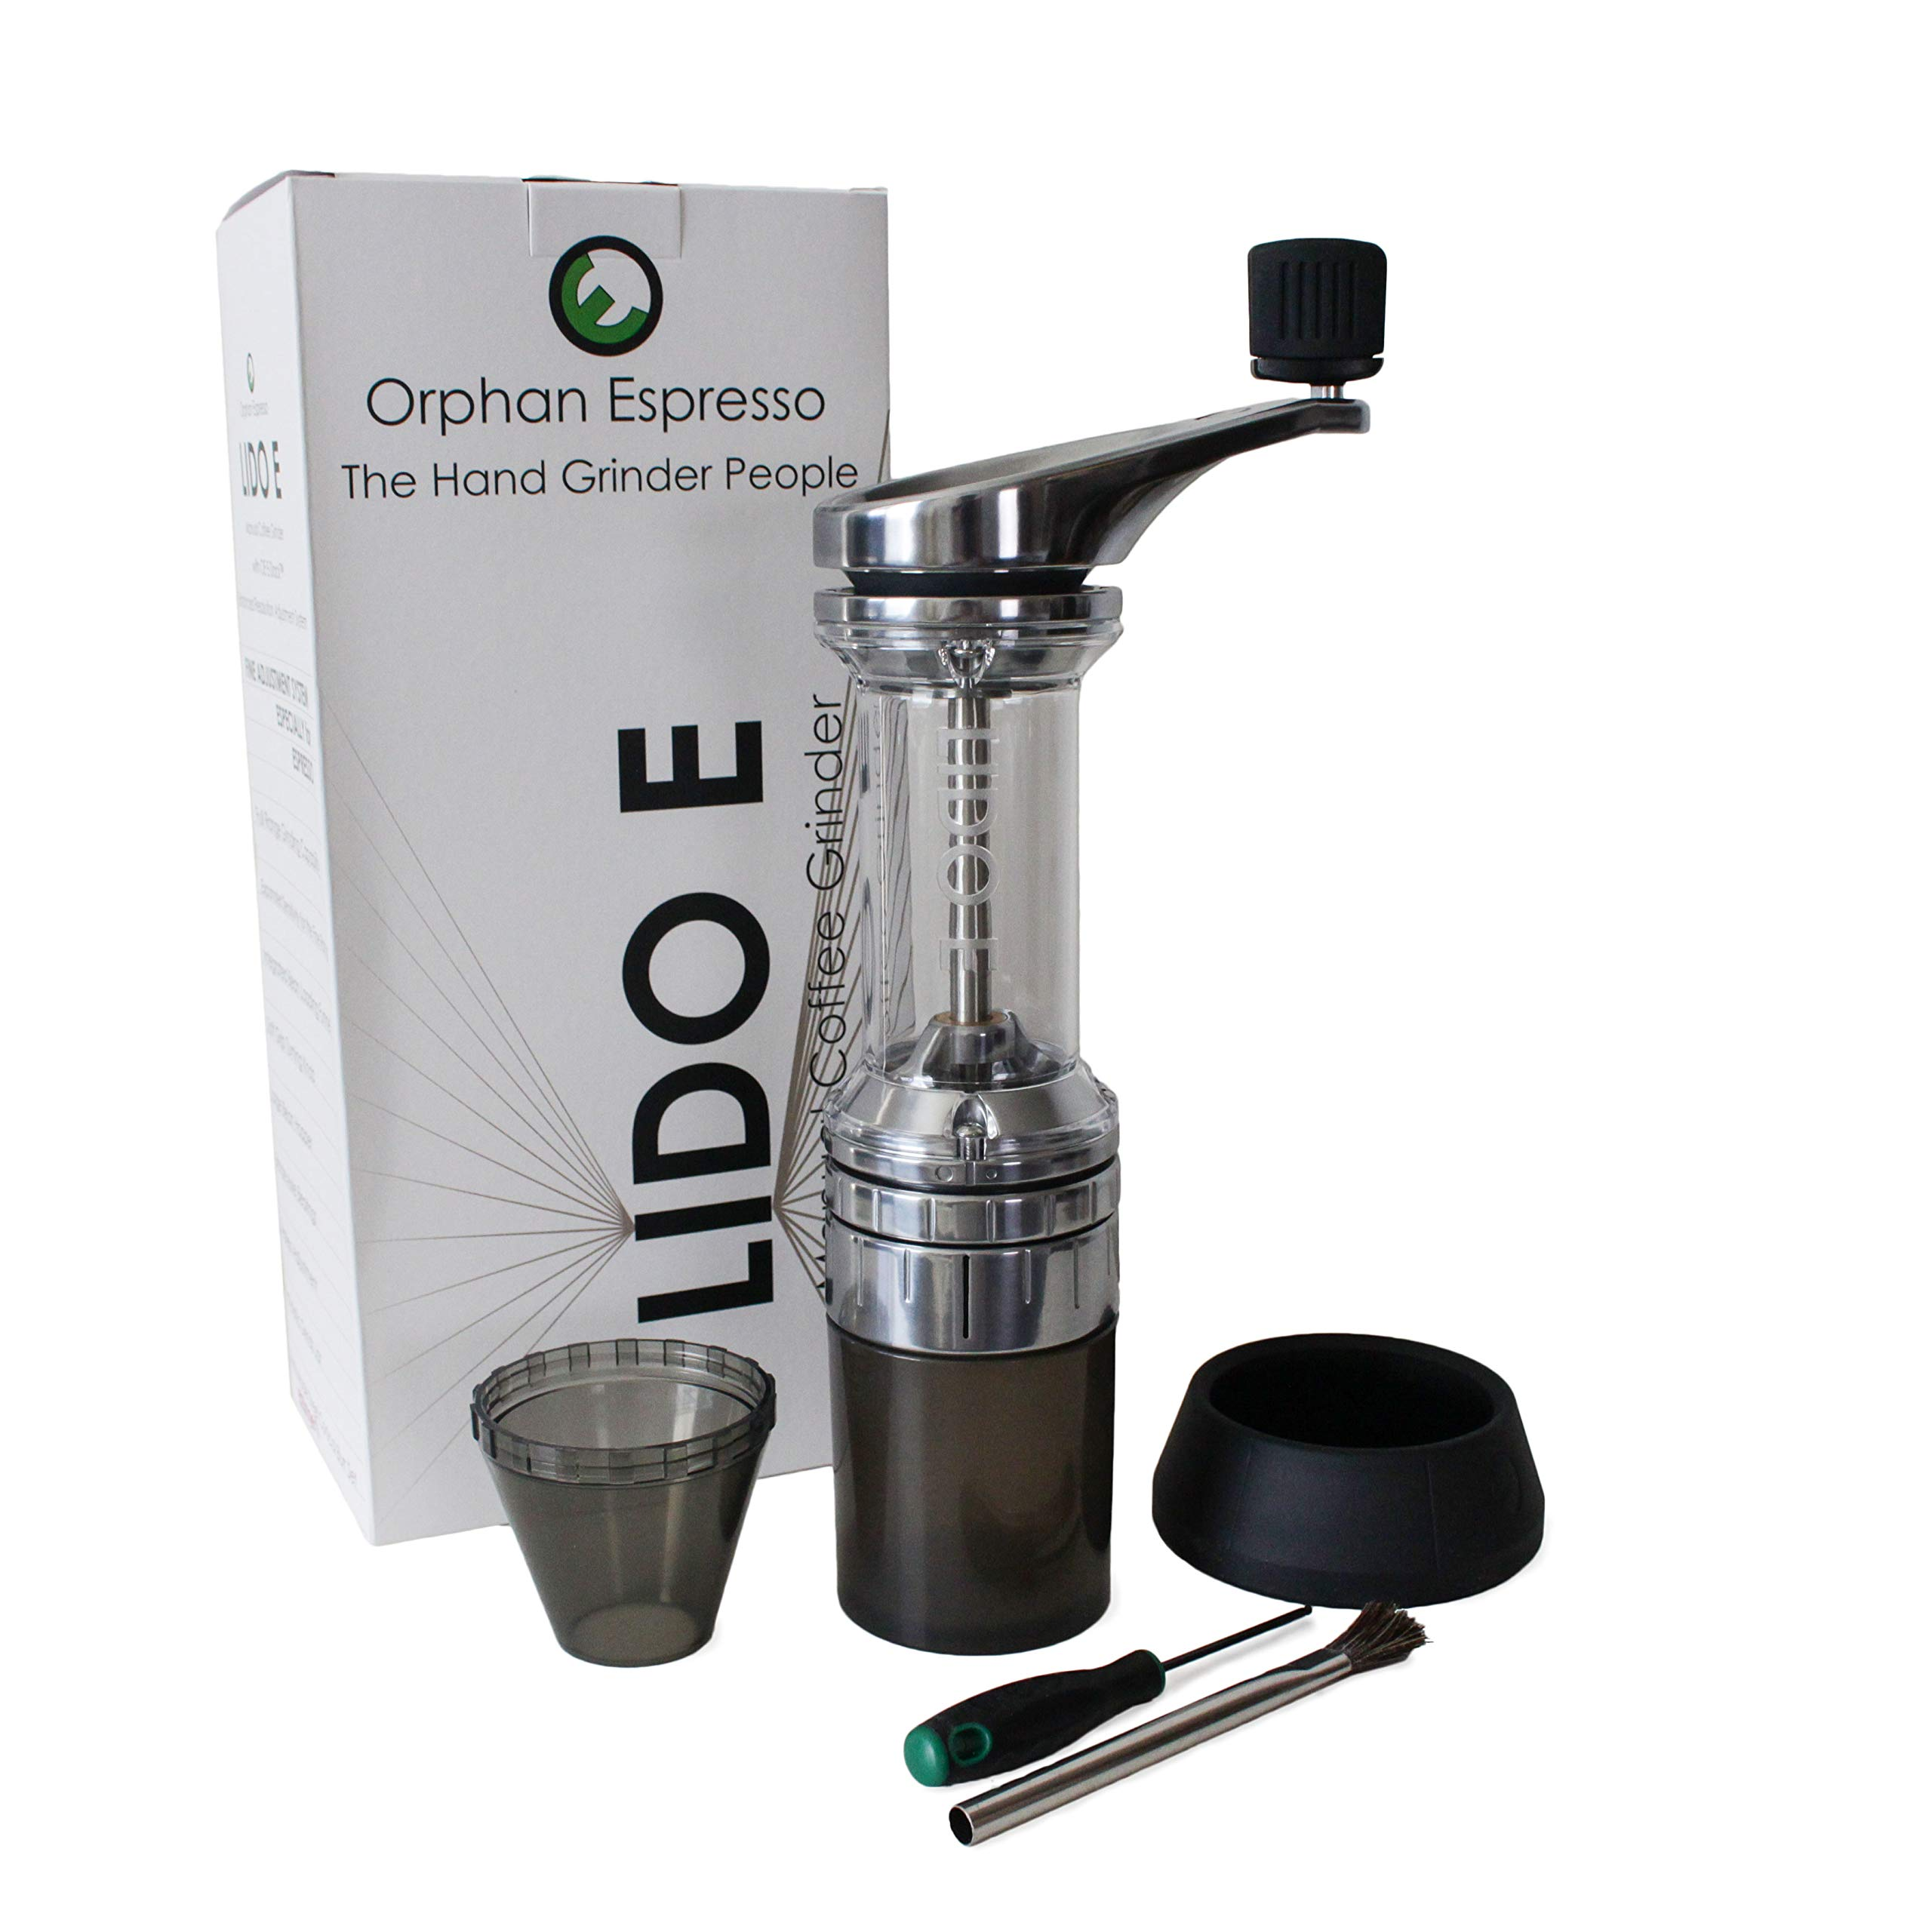 Lido E Manual Espresso & Coffee Grinder | 48mm Swiss Conical Steel Burrs | Stepless Grind Adjustment by Orphan Espresso